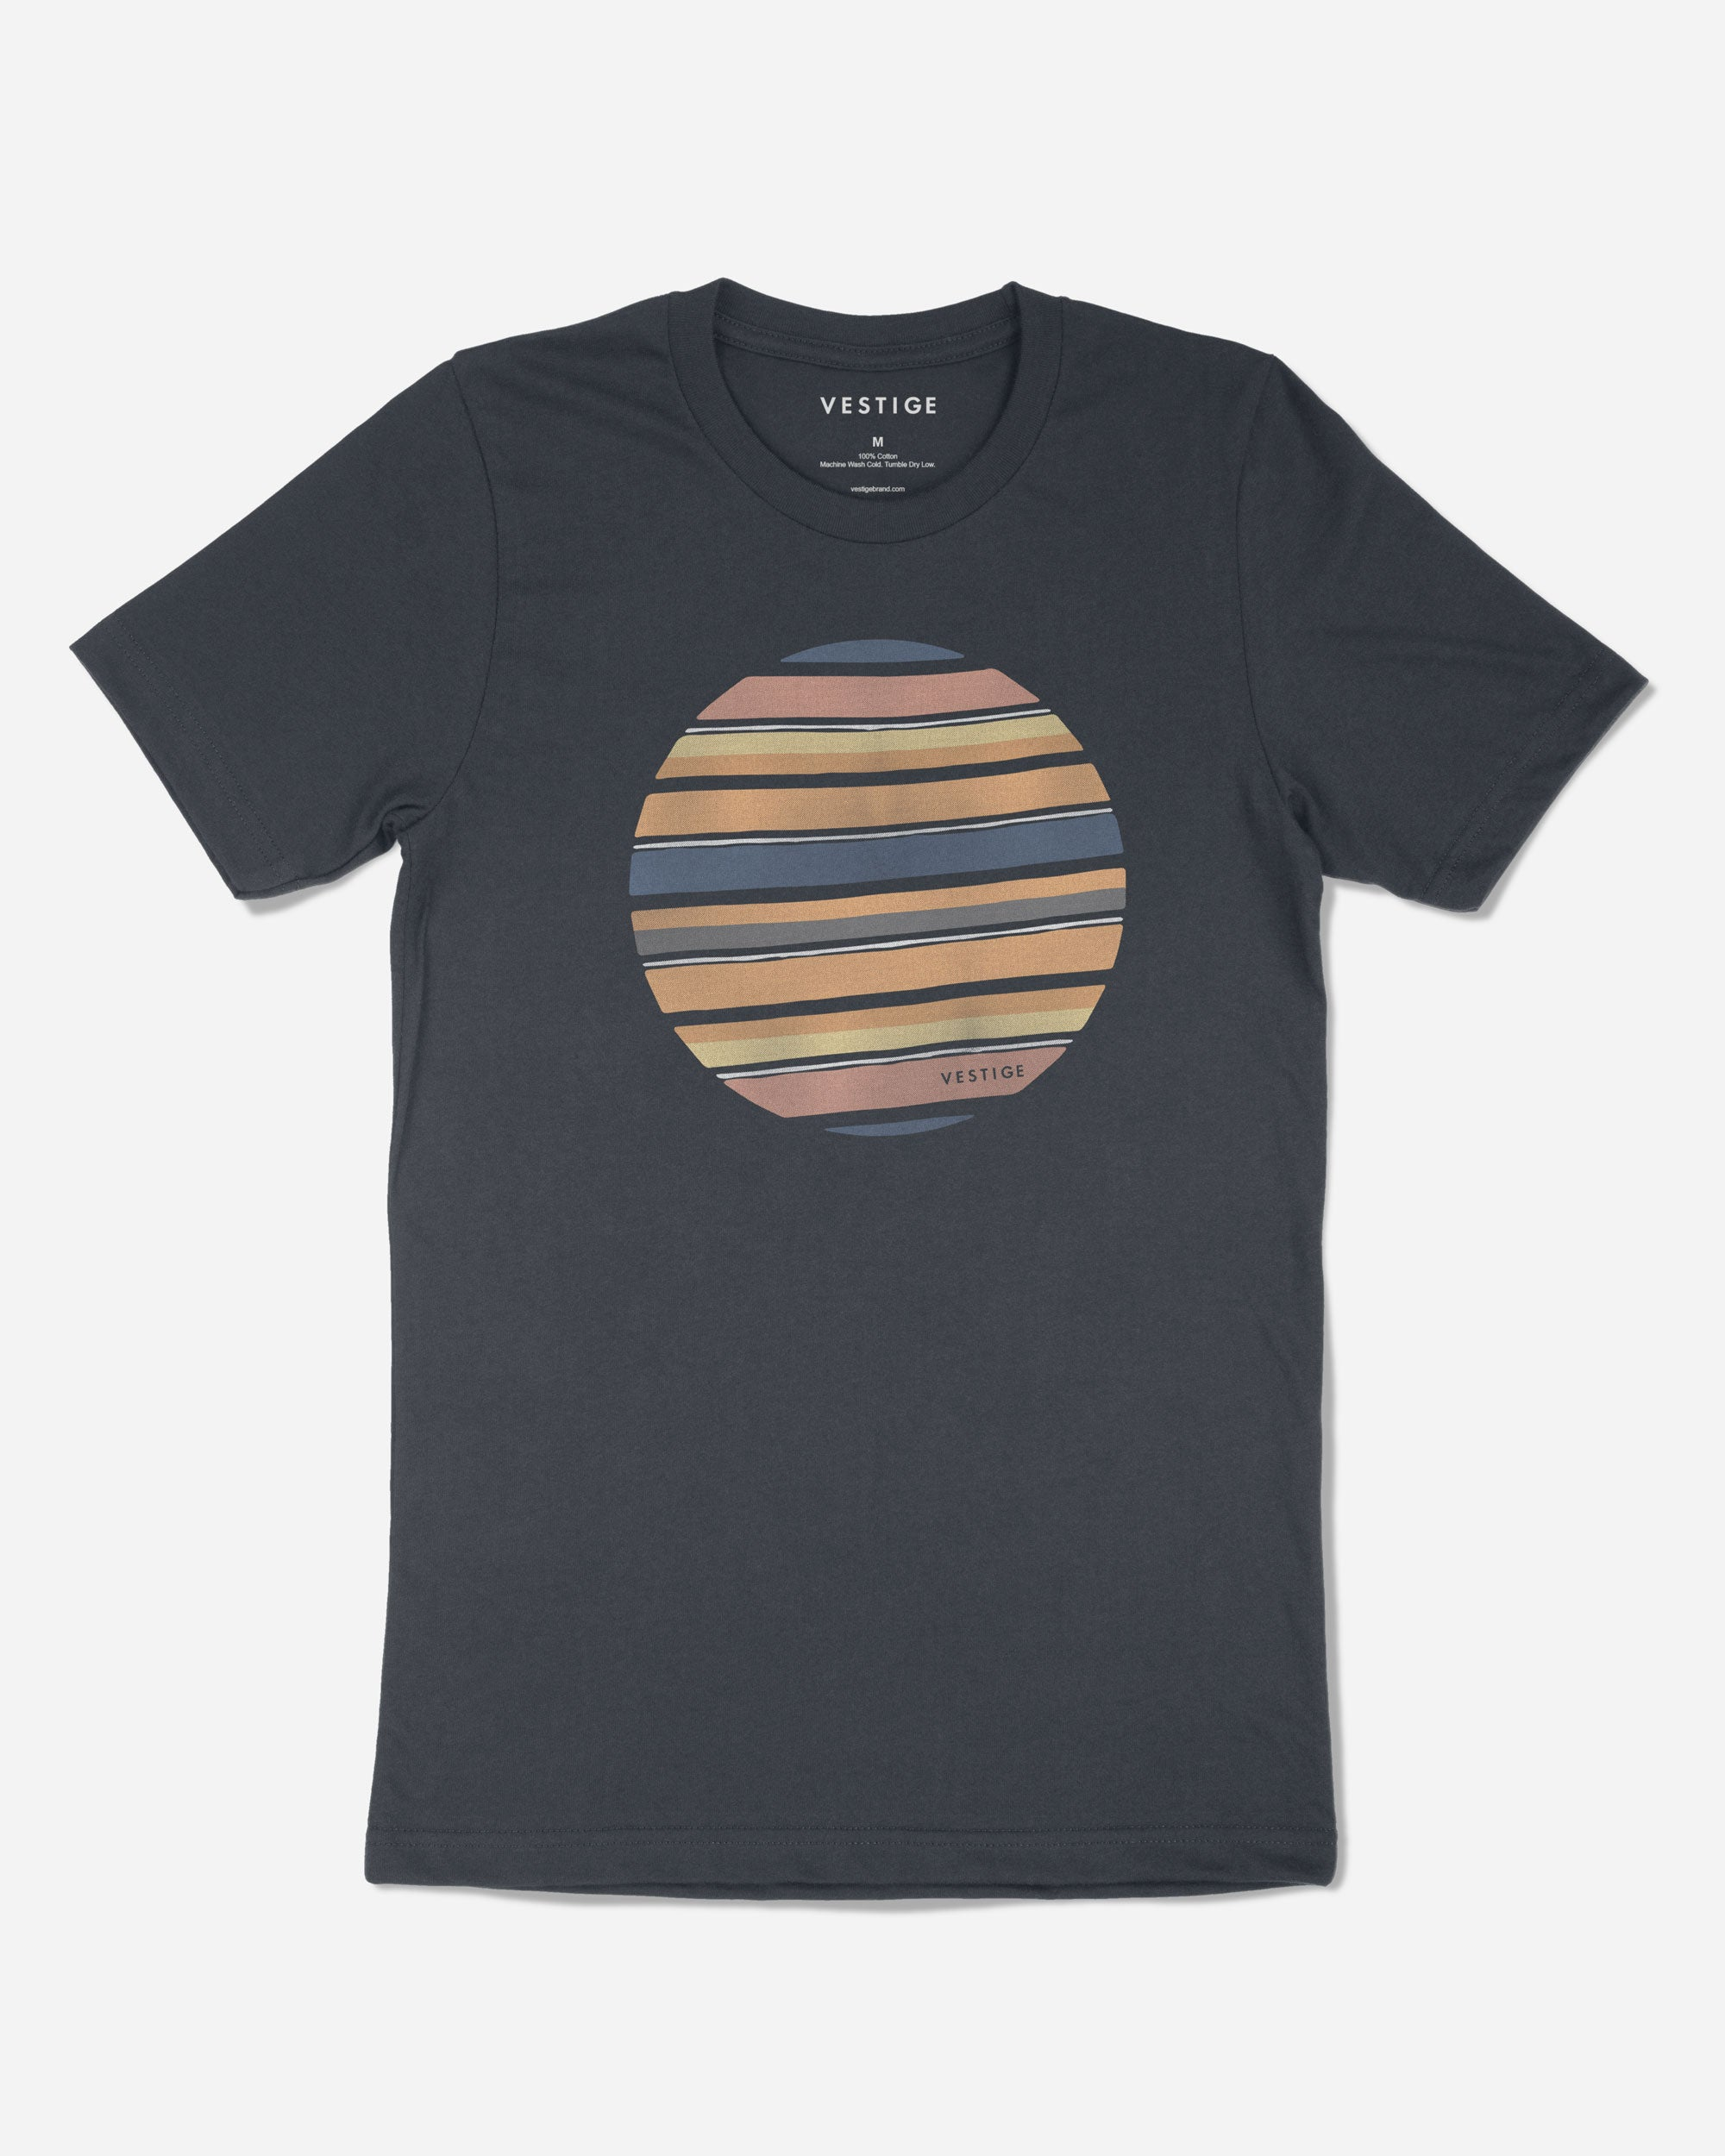 Retro Orbit T-Shirt, Navy